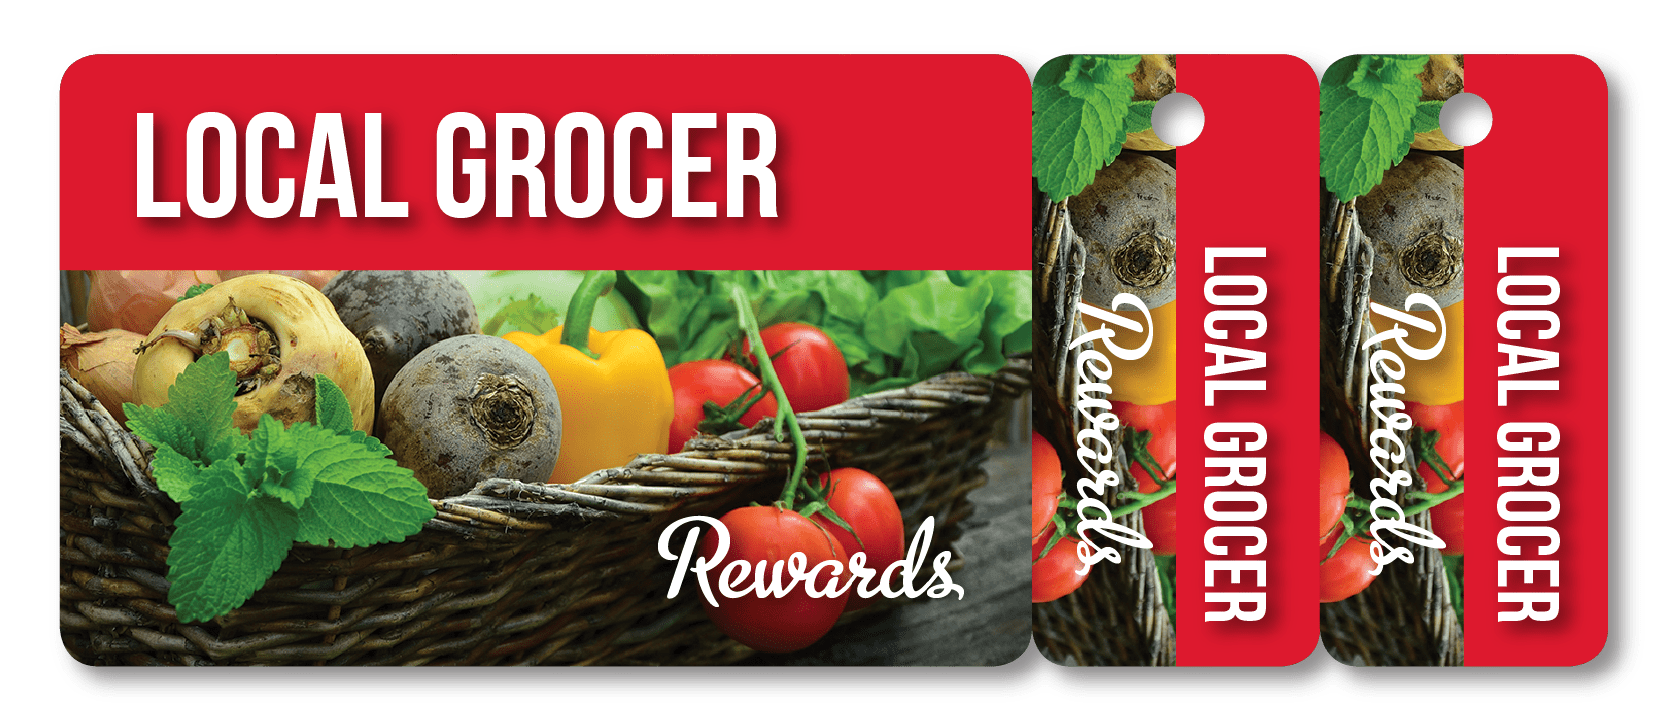 Grocery rewards card with two attached key tags showing a basket of fresh produce